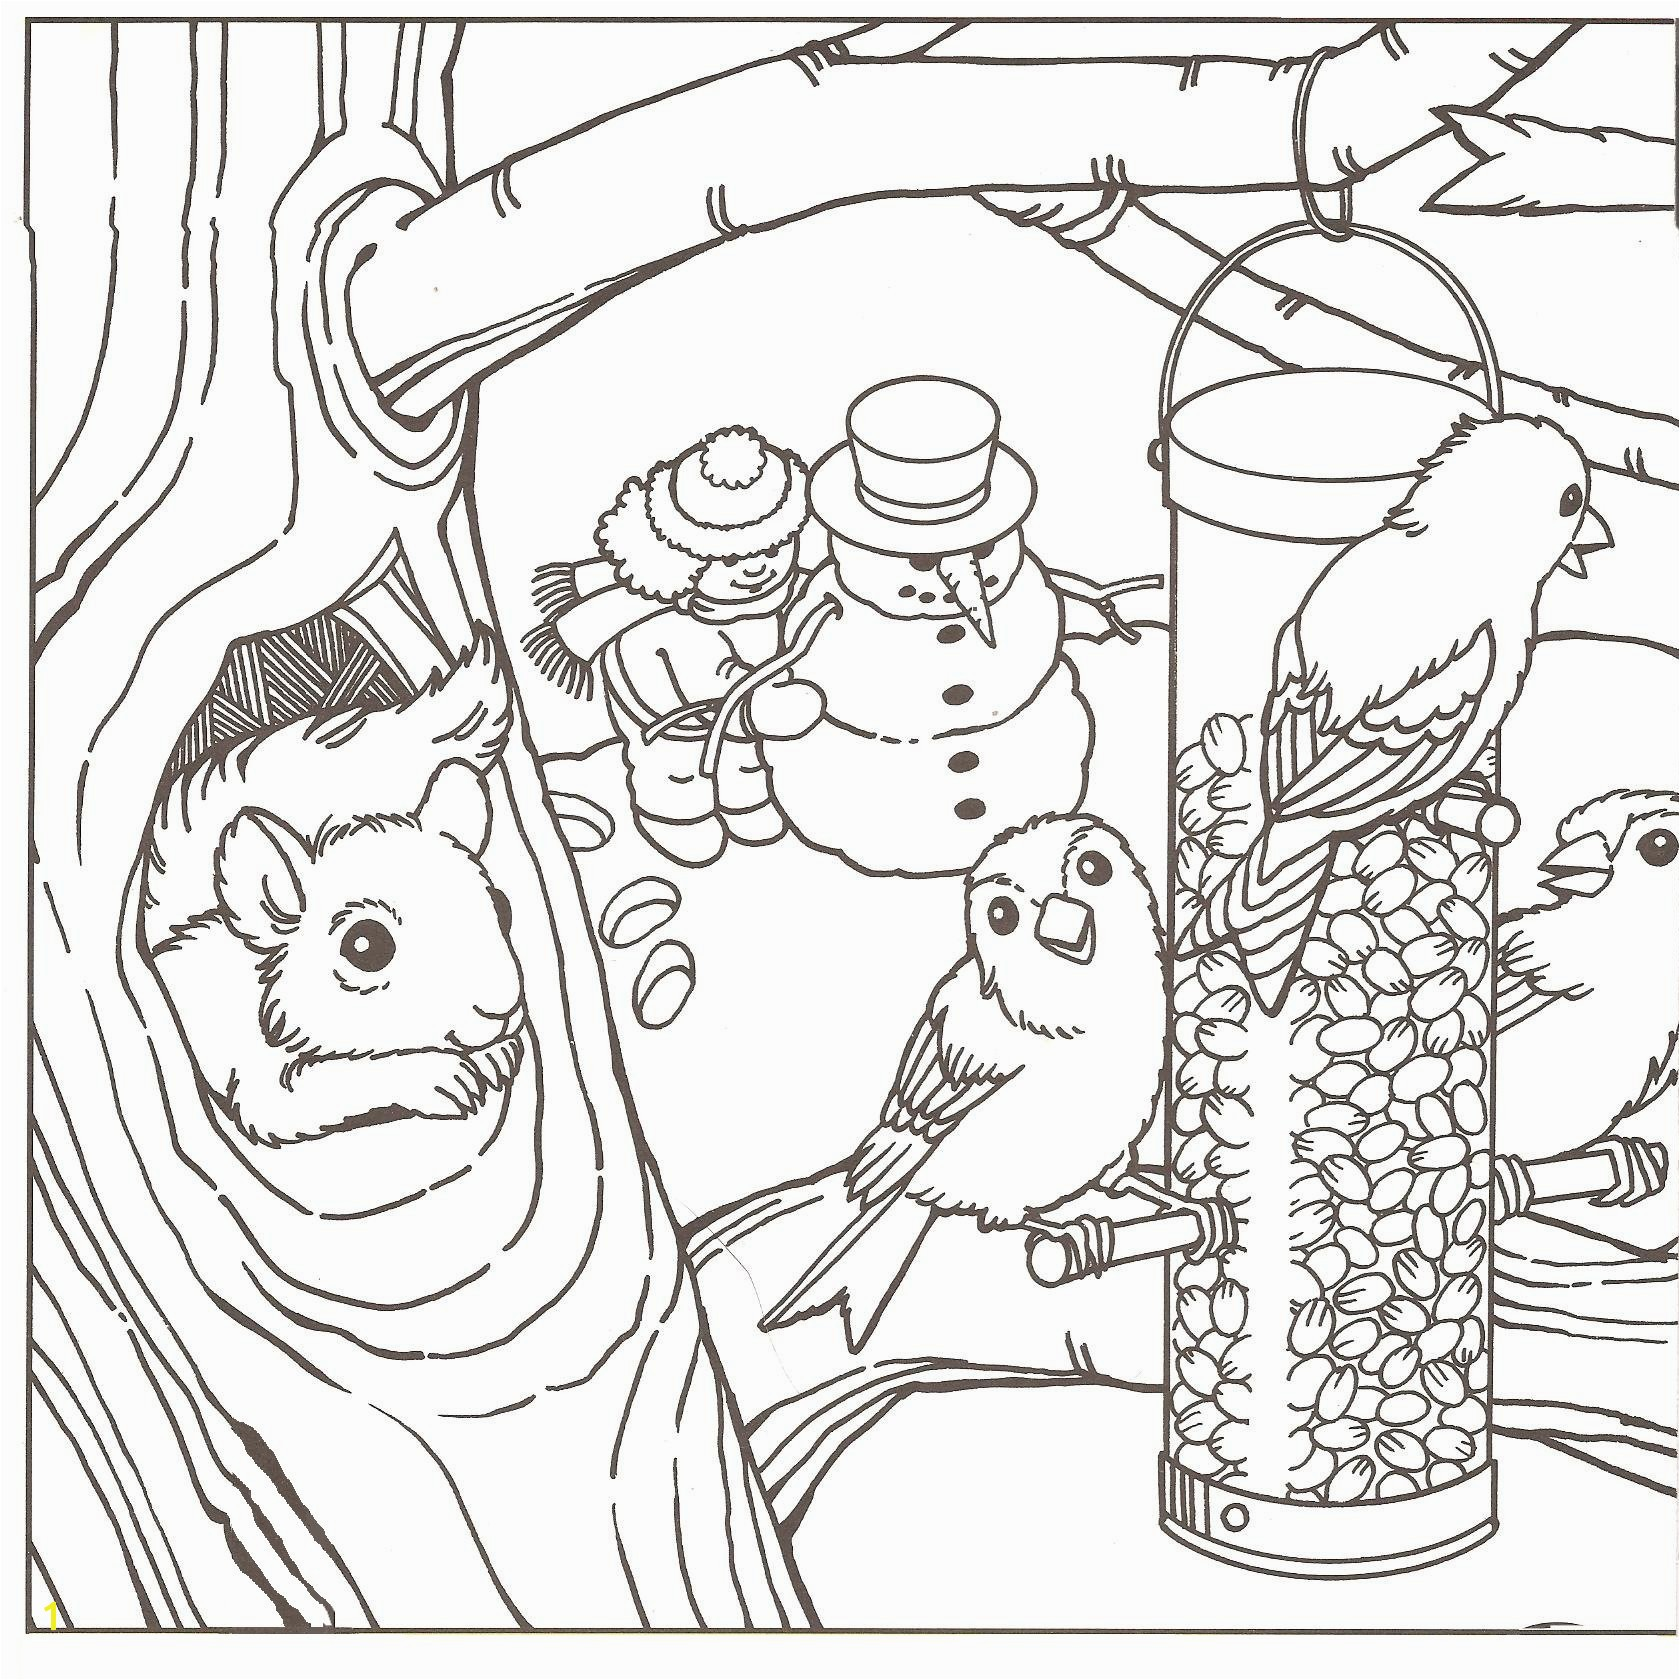 Winter Coloring Pages Adults Elegant Phenomenal Free Winter Coloring Pages A P L E Cute Scene To Color